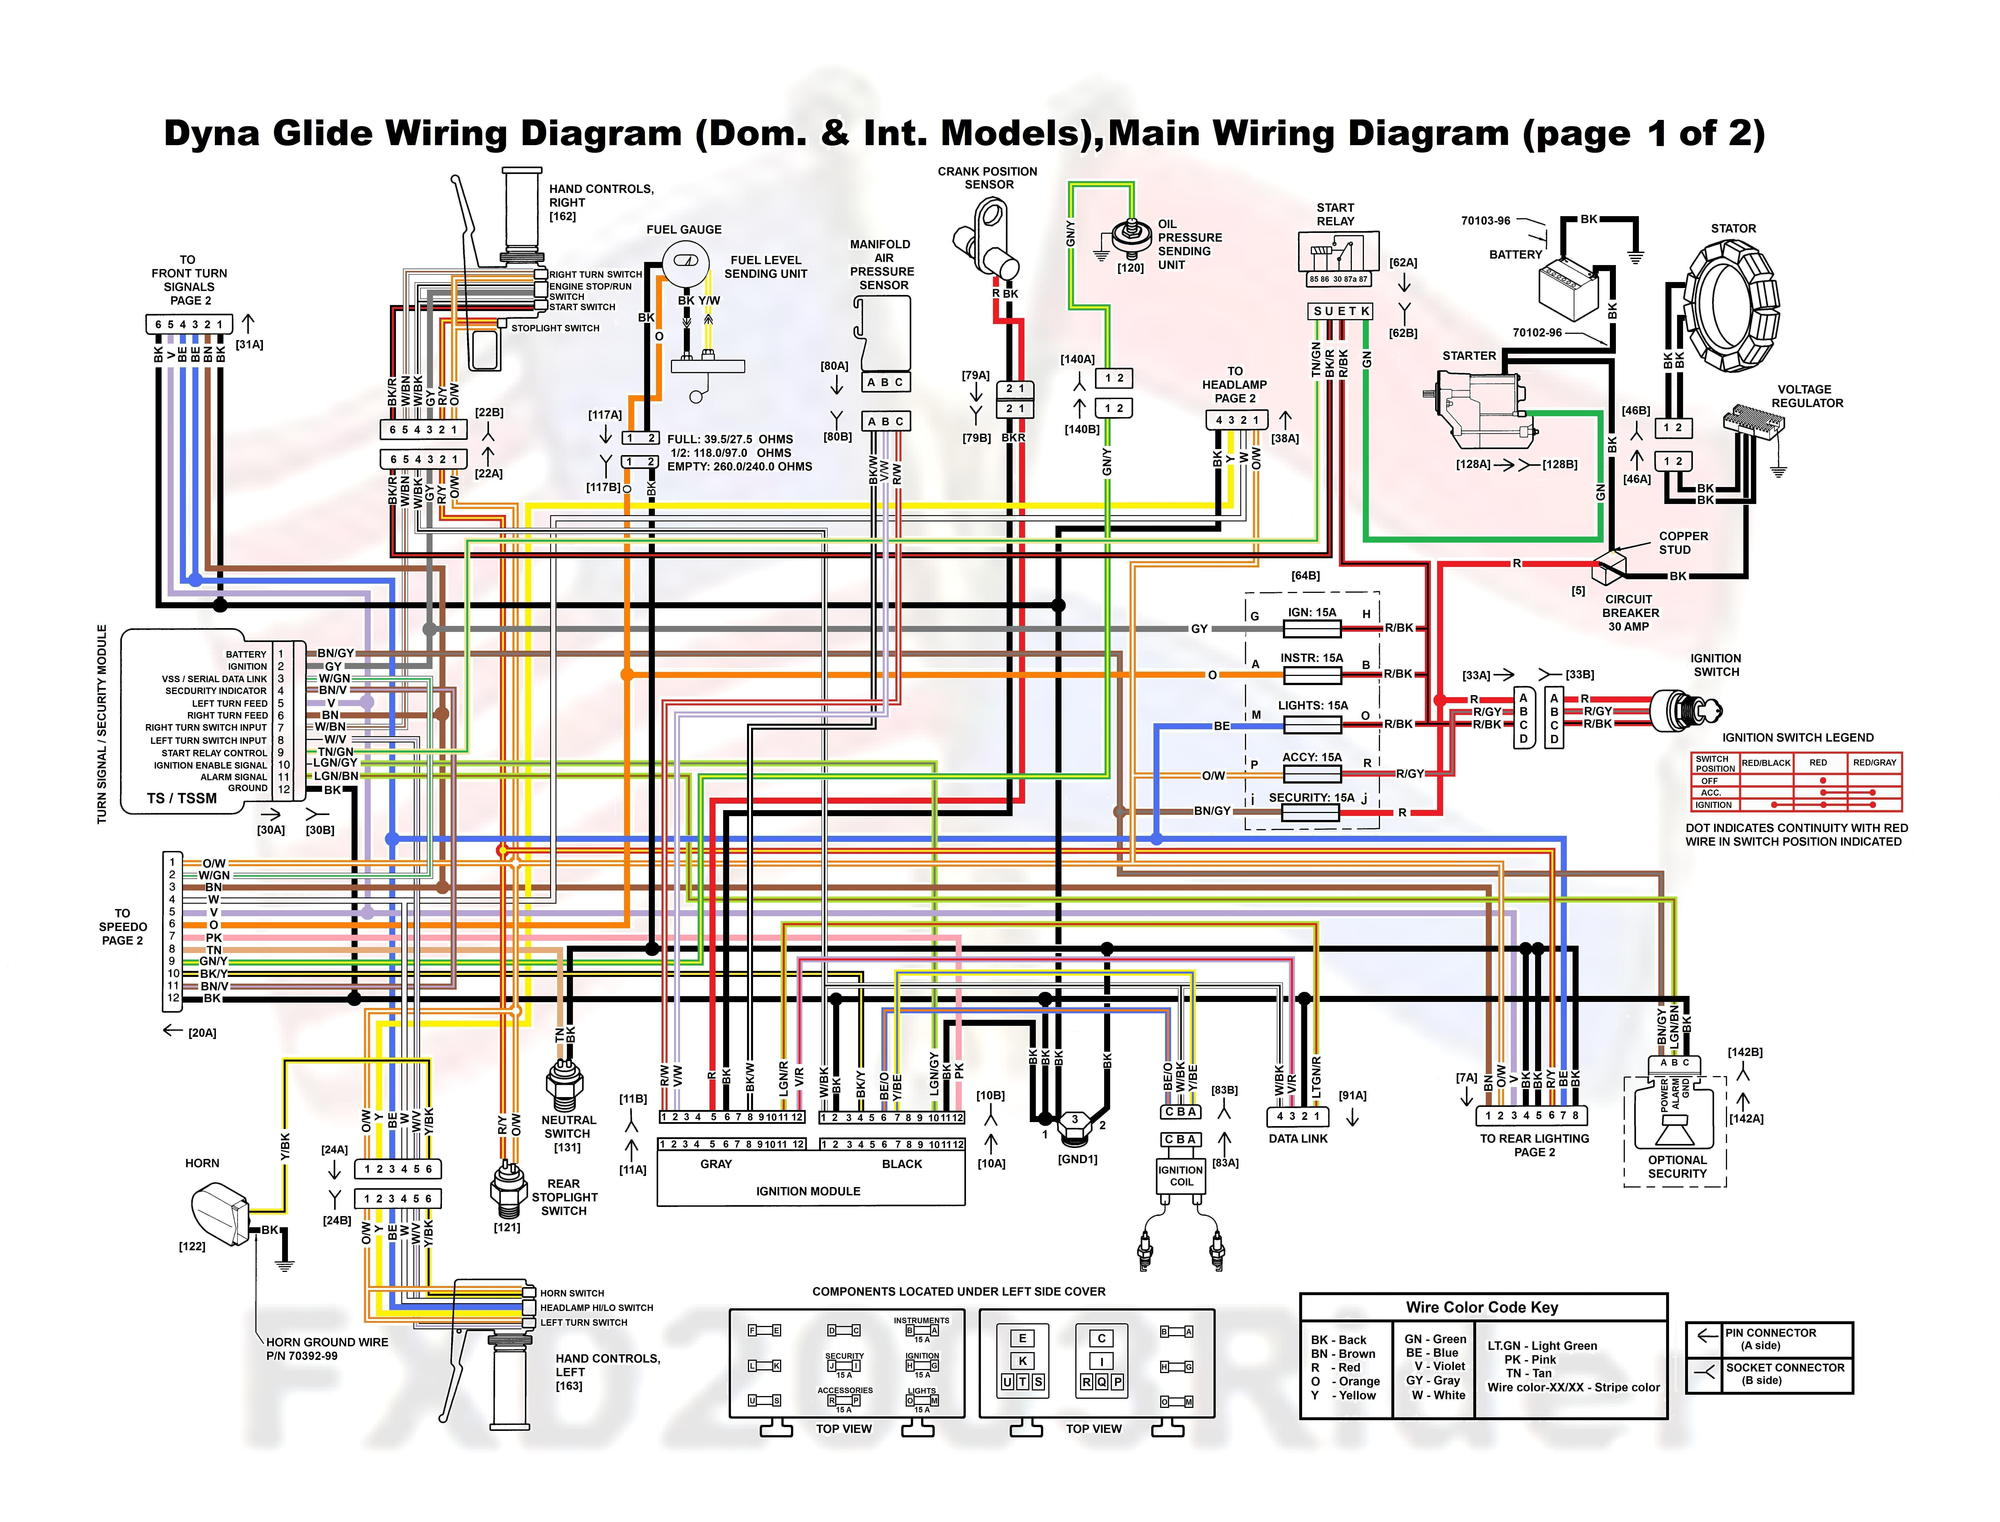 1F432 Road King Accessory Wiring Diagram | Digital Resources on mallory resistors, mallory battery, mallory electronics, mallory furniture, mallory gauges,